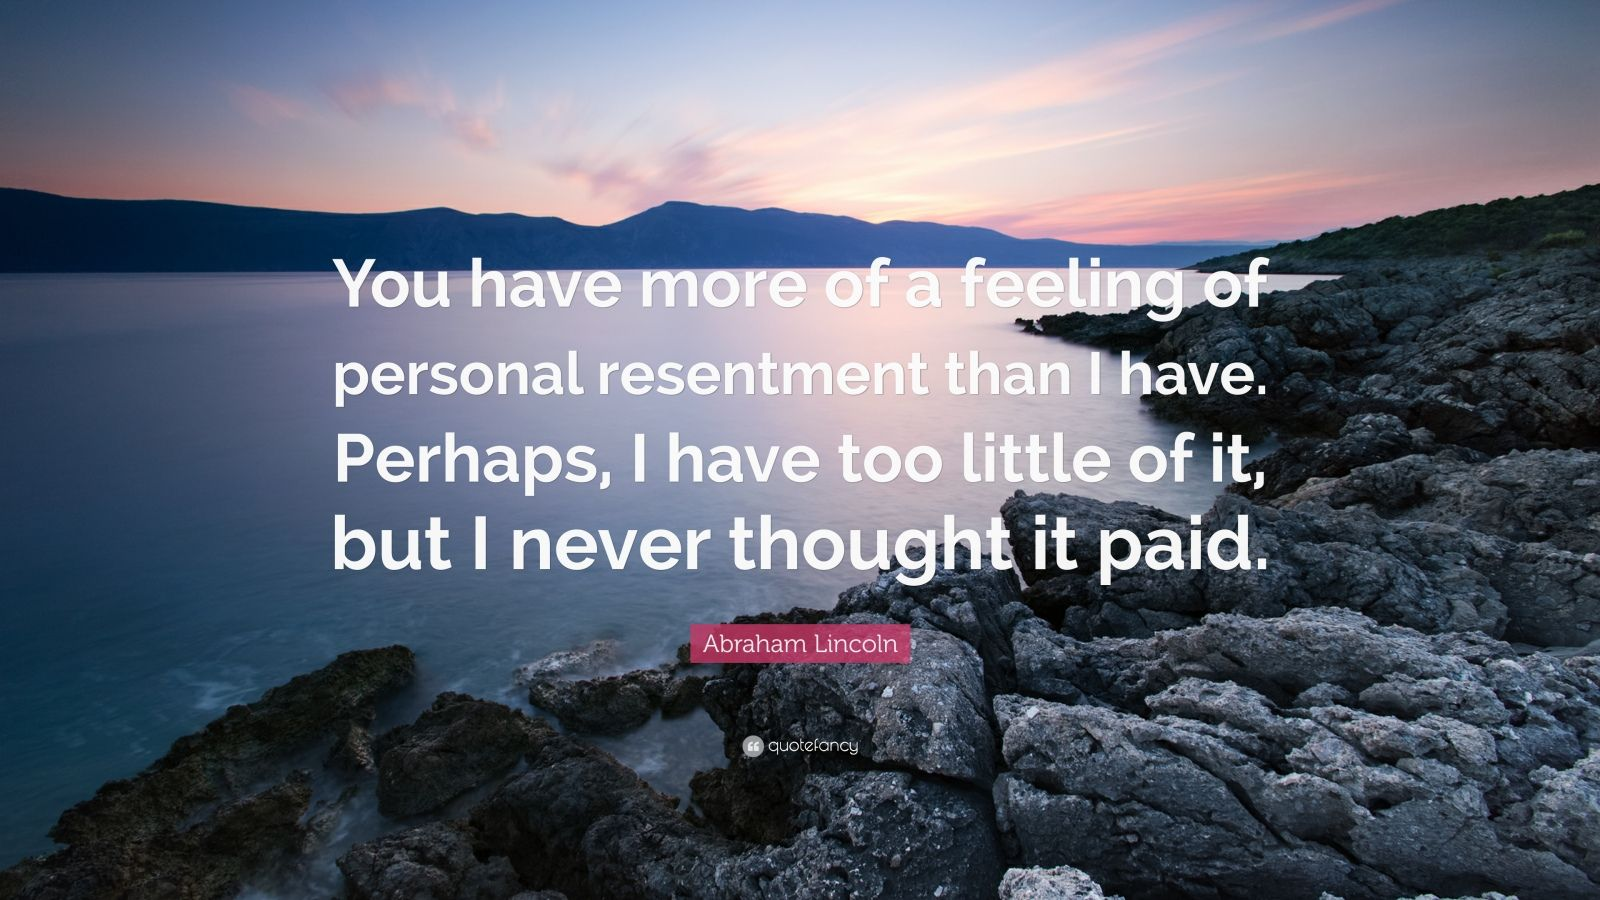 """Abraham Lincoln Quote: """"You have more of a feeling of personal resentment than I have. Perhaps, I have too little of it, but I never thought it paid."""""""